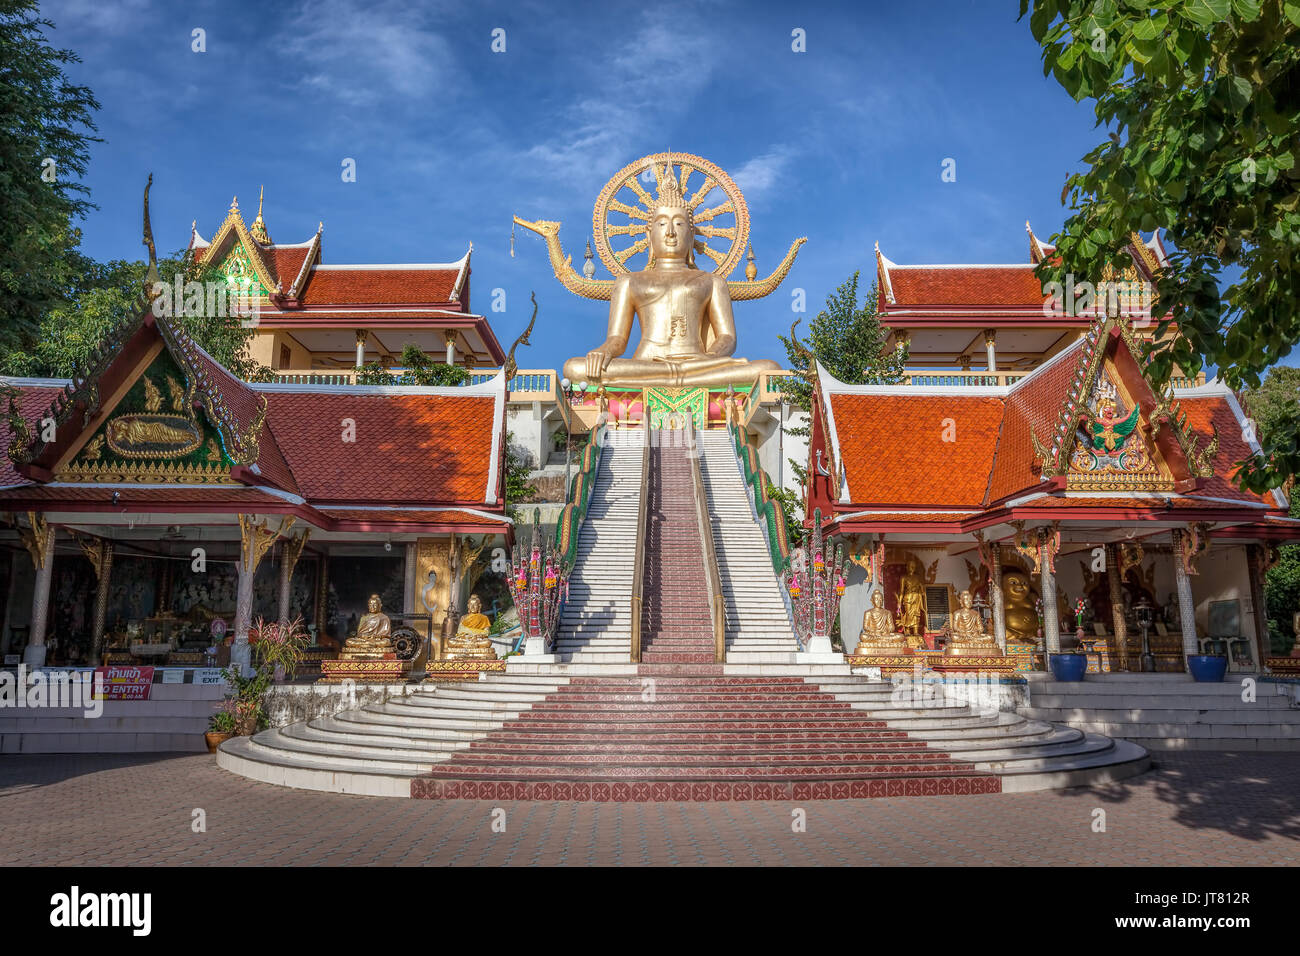 Big Buddha temple or Wat Phra Yai in Kho Samui island, Thailand - Stock Image